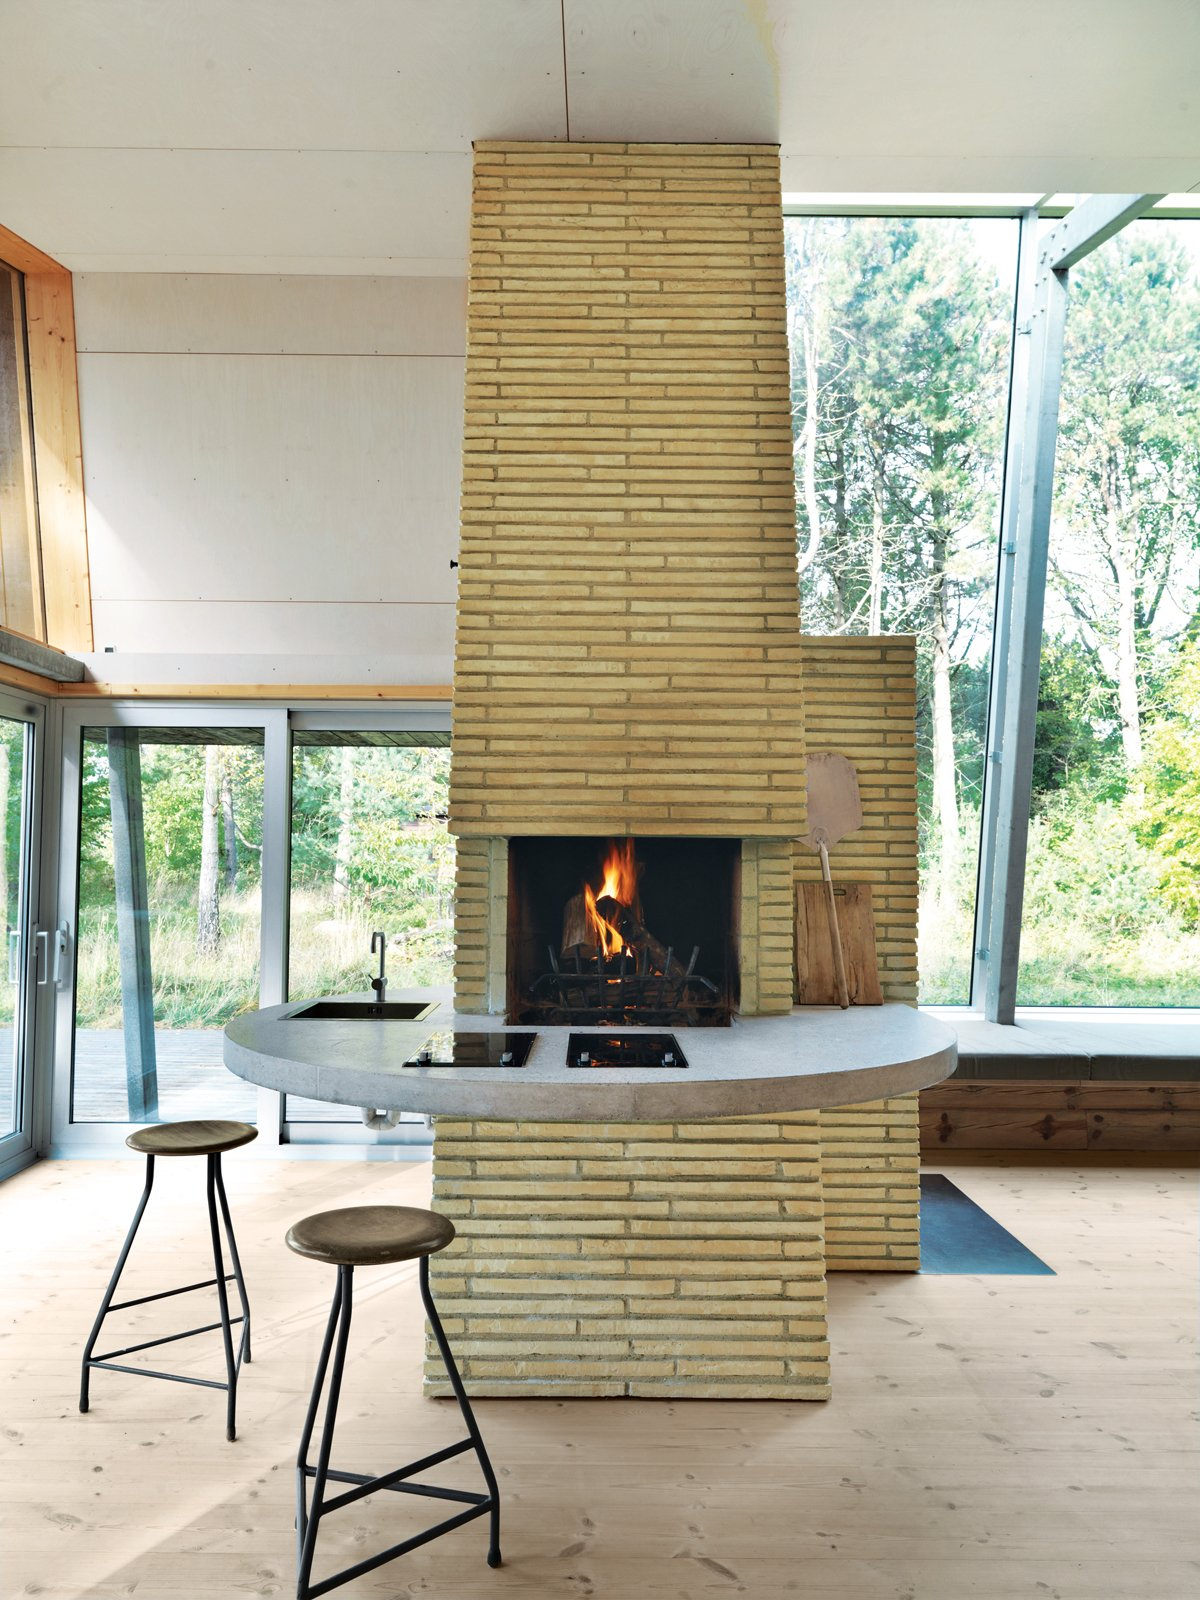 Kitchen and Concrete Counter The open-plan home's core is the towering chimney—clad in the same double-long, thin bricks that sheathe the Kolumba museum in Cologne, Germany. It holds three fireplaces, a conventional oven, and a pizza oven; all vent into three distinct flues, emerging from the chimney as their own kind of architectural statement. Inside, life revolves around the brick chimney, which the architect surrounded with a concrete counter that wraps from the kitchen to the living area. The stools are vintage.  Photo 4 of 5 in A Playful Summer Home with Some Serious Angles